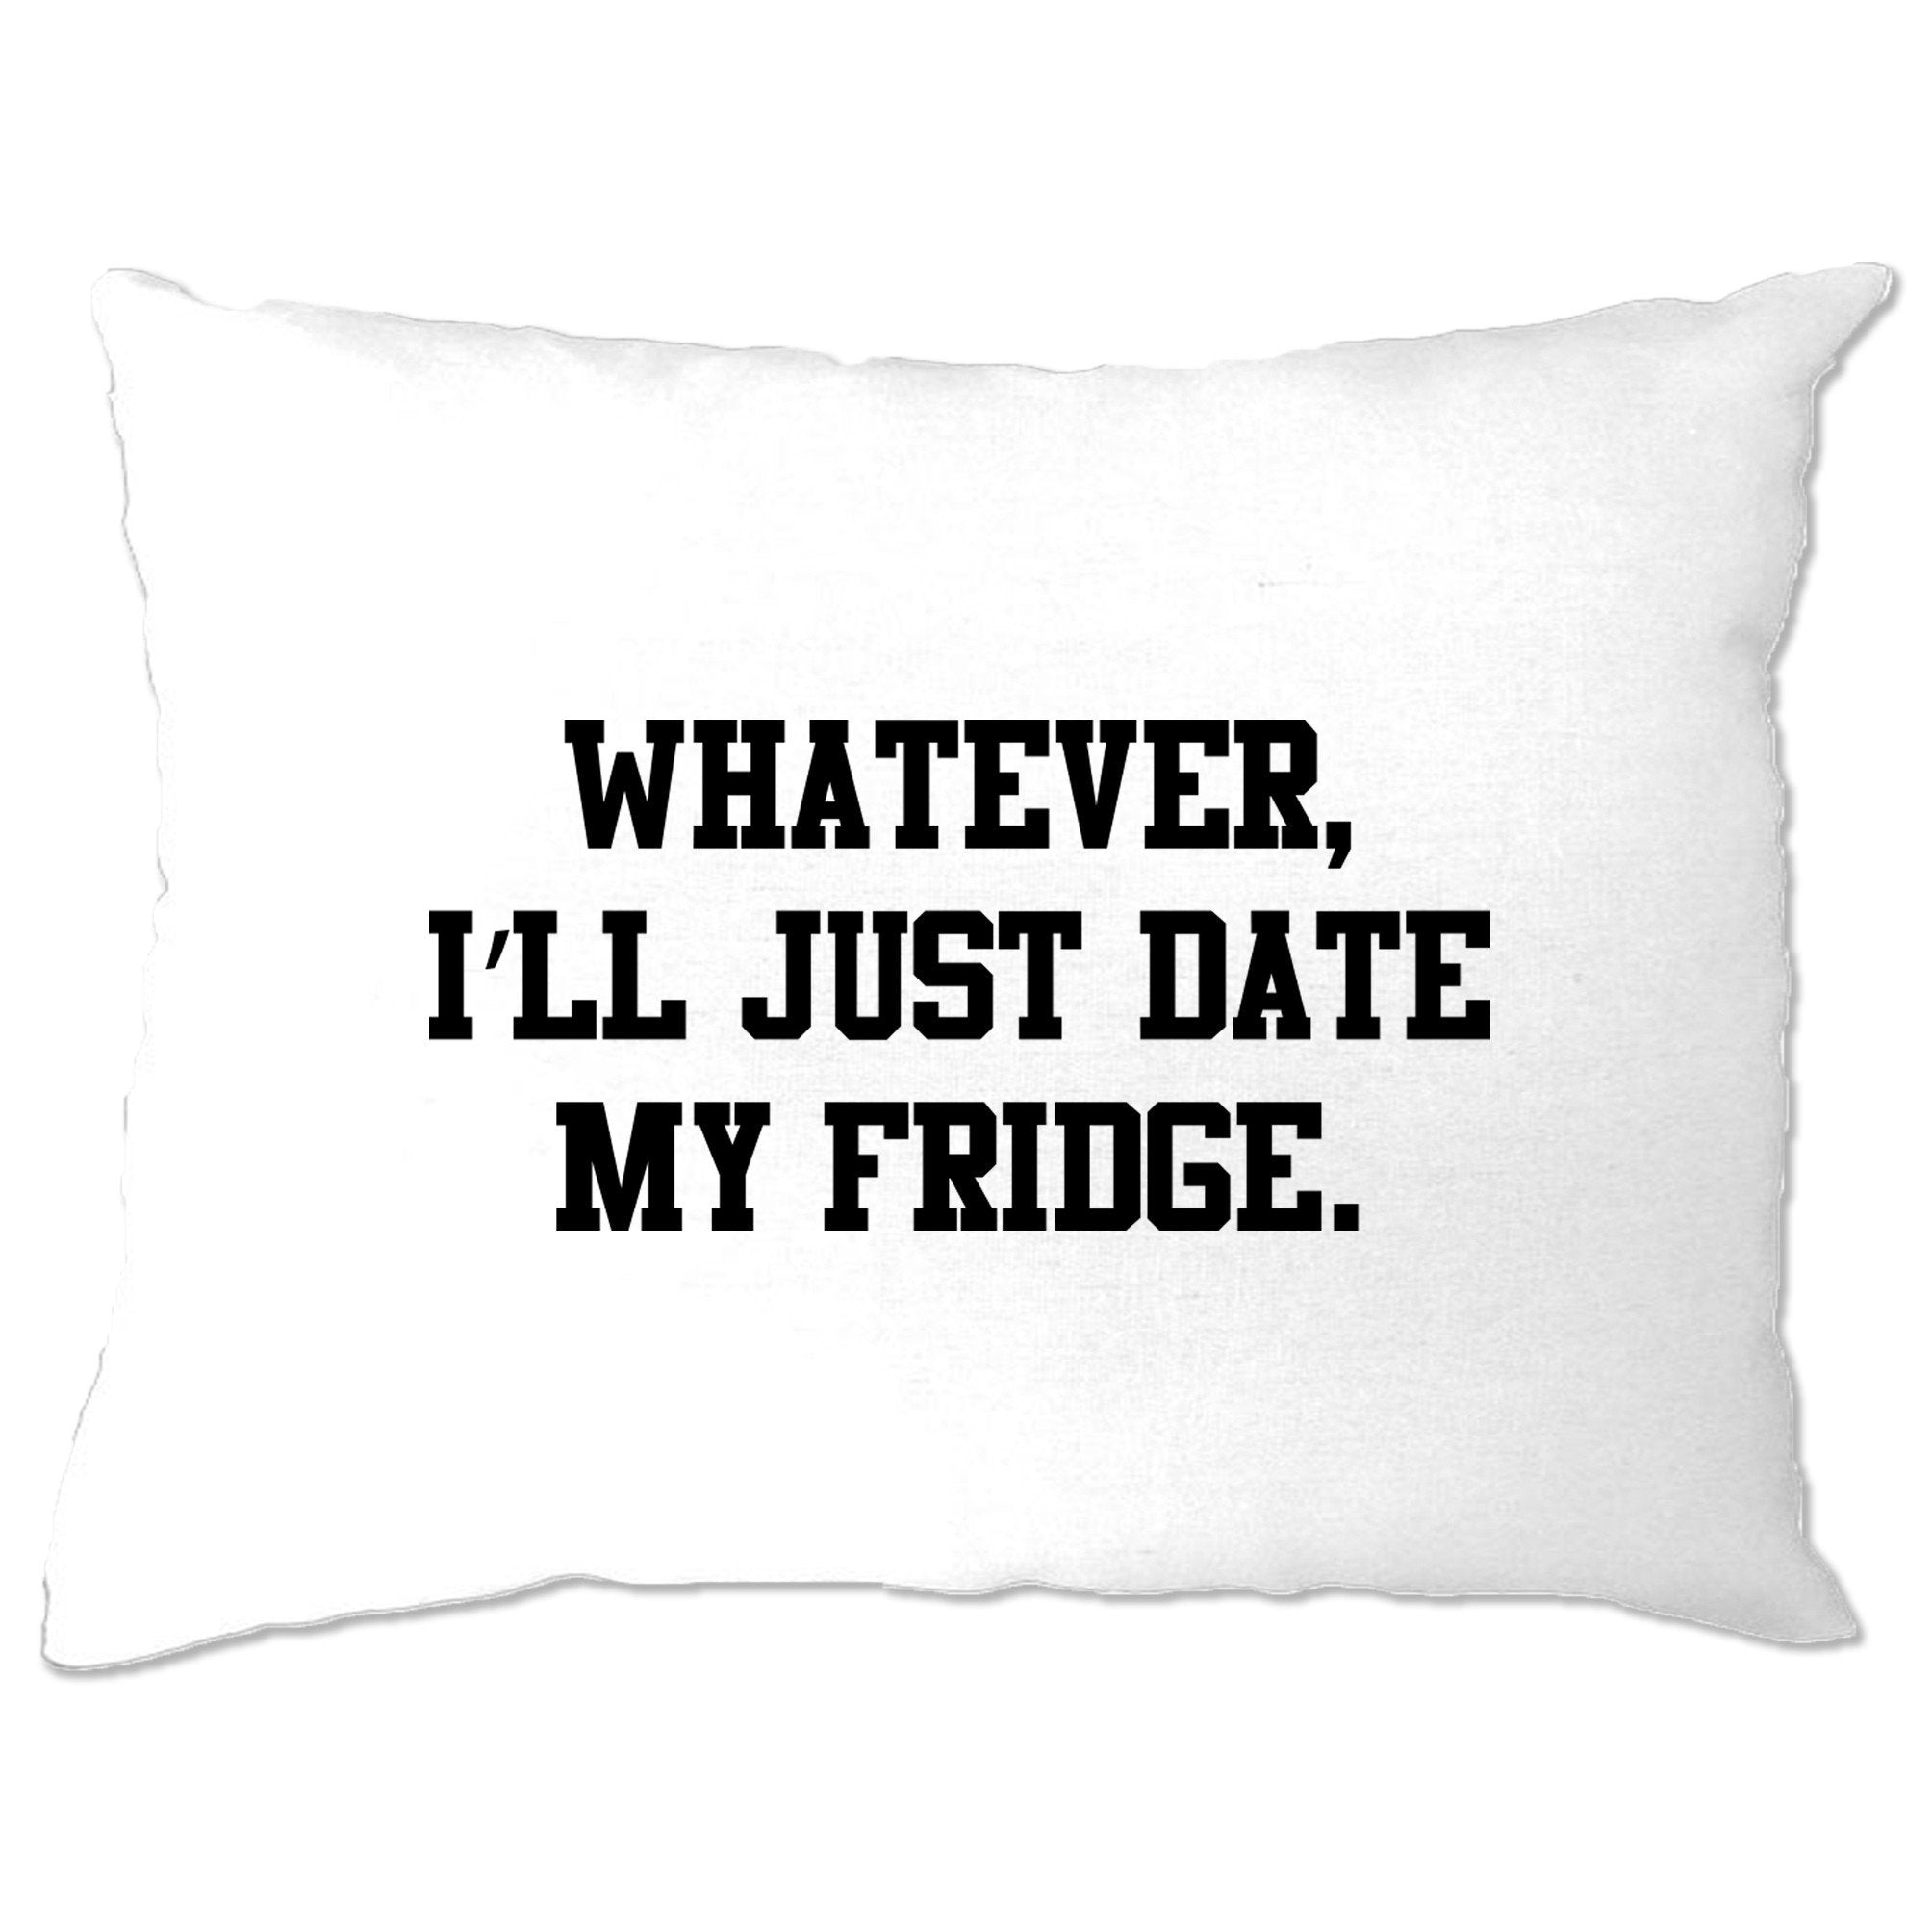 Single Life Joke Pillow Case Whatever I'll Date My Fridge